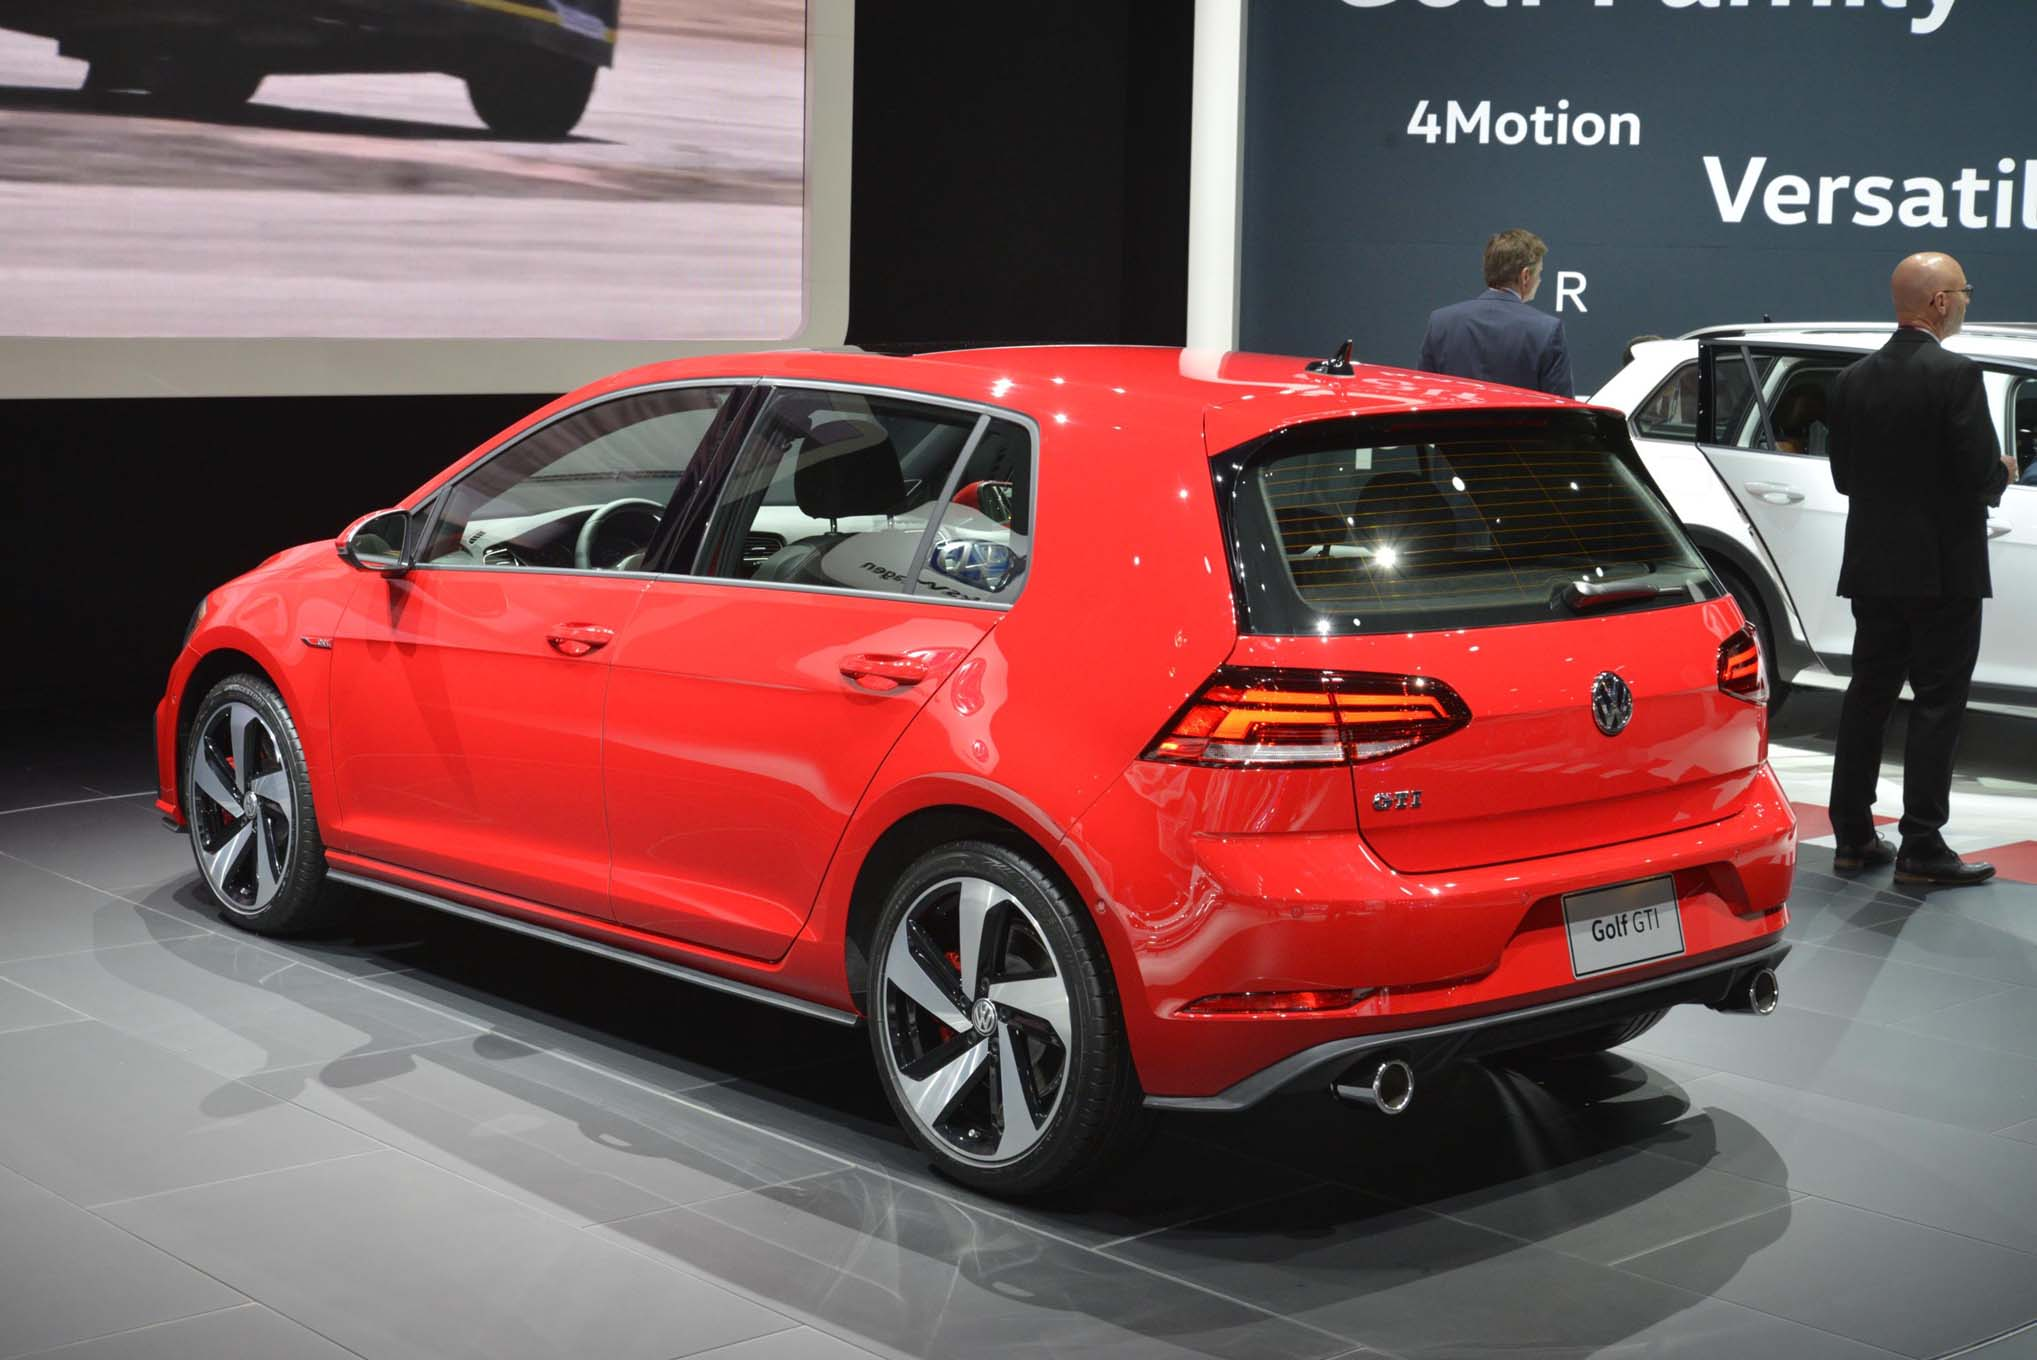 2018 Gti Release >> Eighth-Gen Volkswagen Golf to Begin Production Summer of 2019 | Automobile Magazine